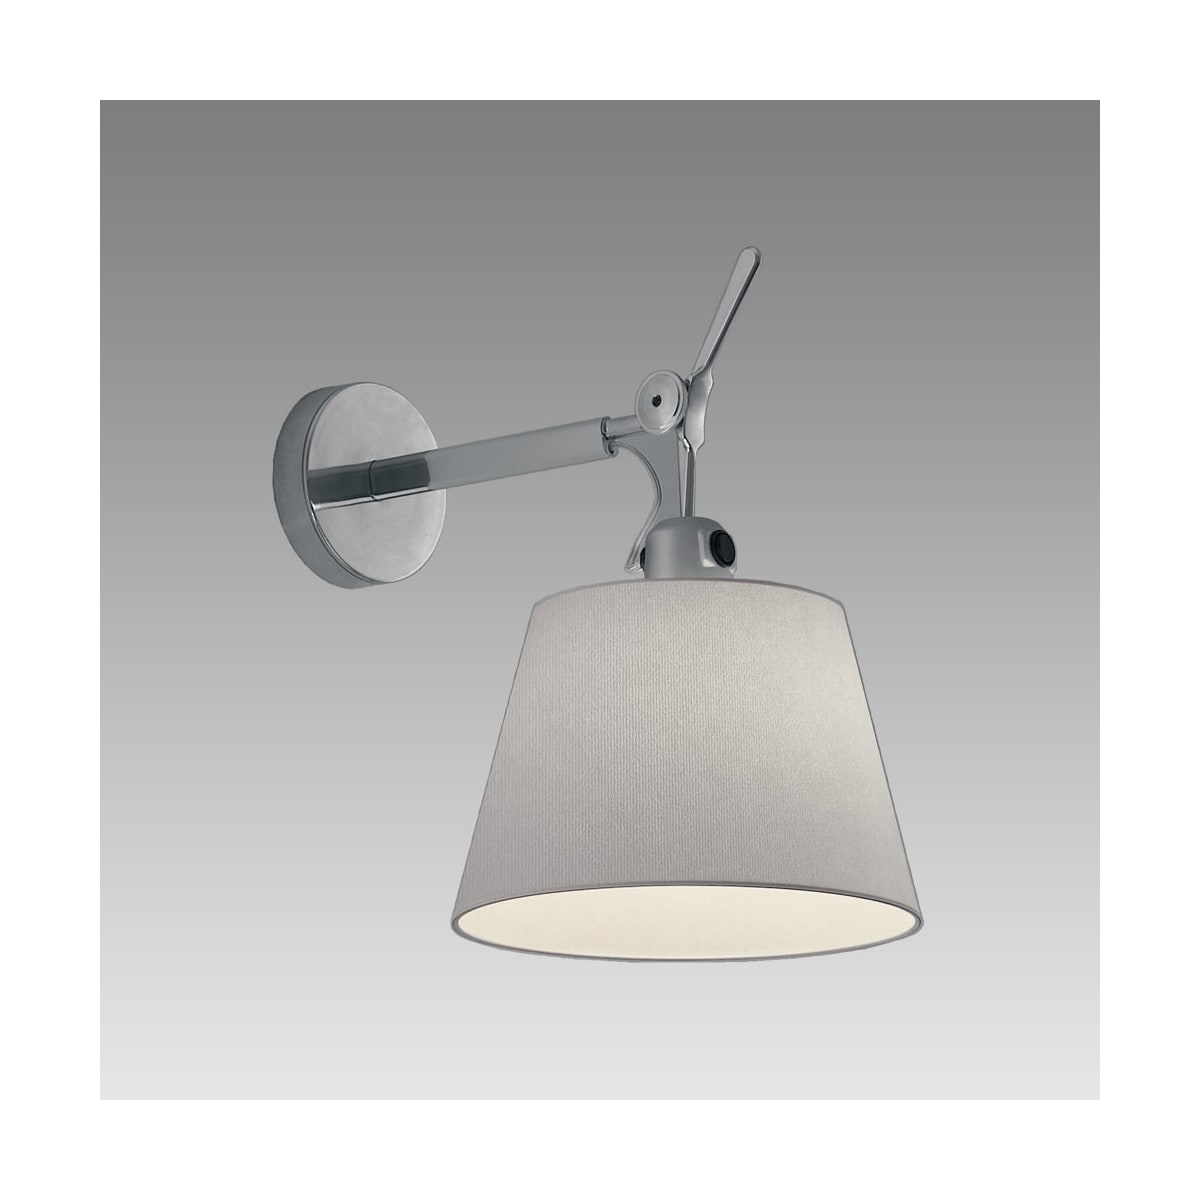 huge selection of 112de 1da1c Artemide Tolomeo With Shade Wall Sconce